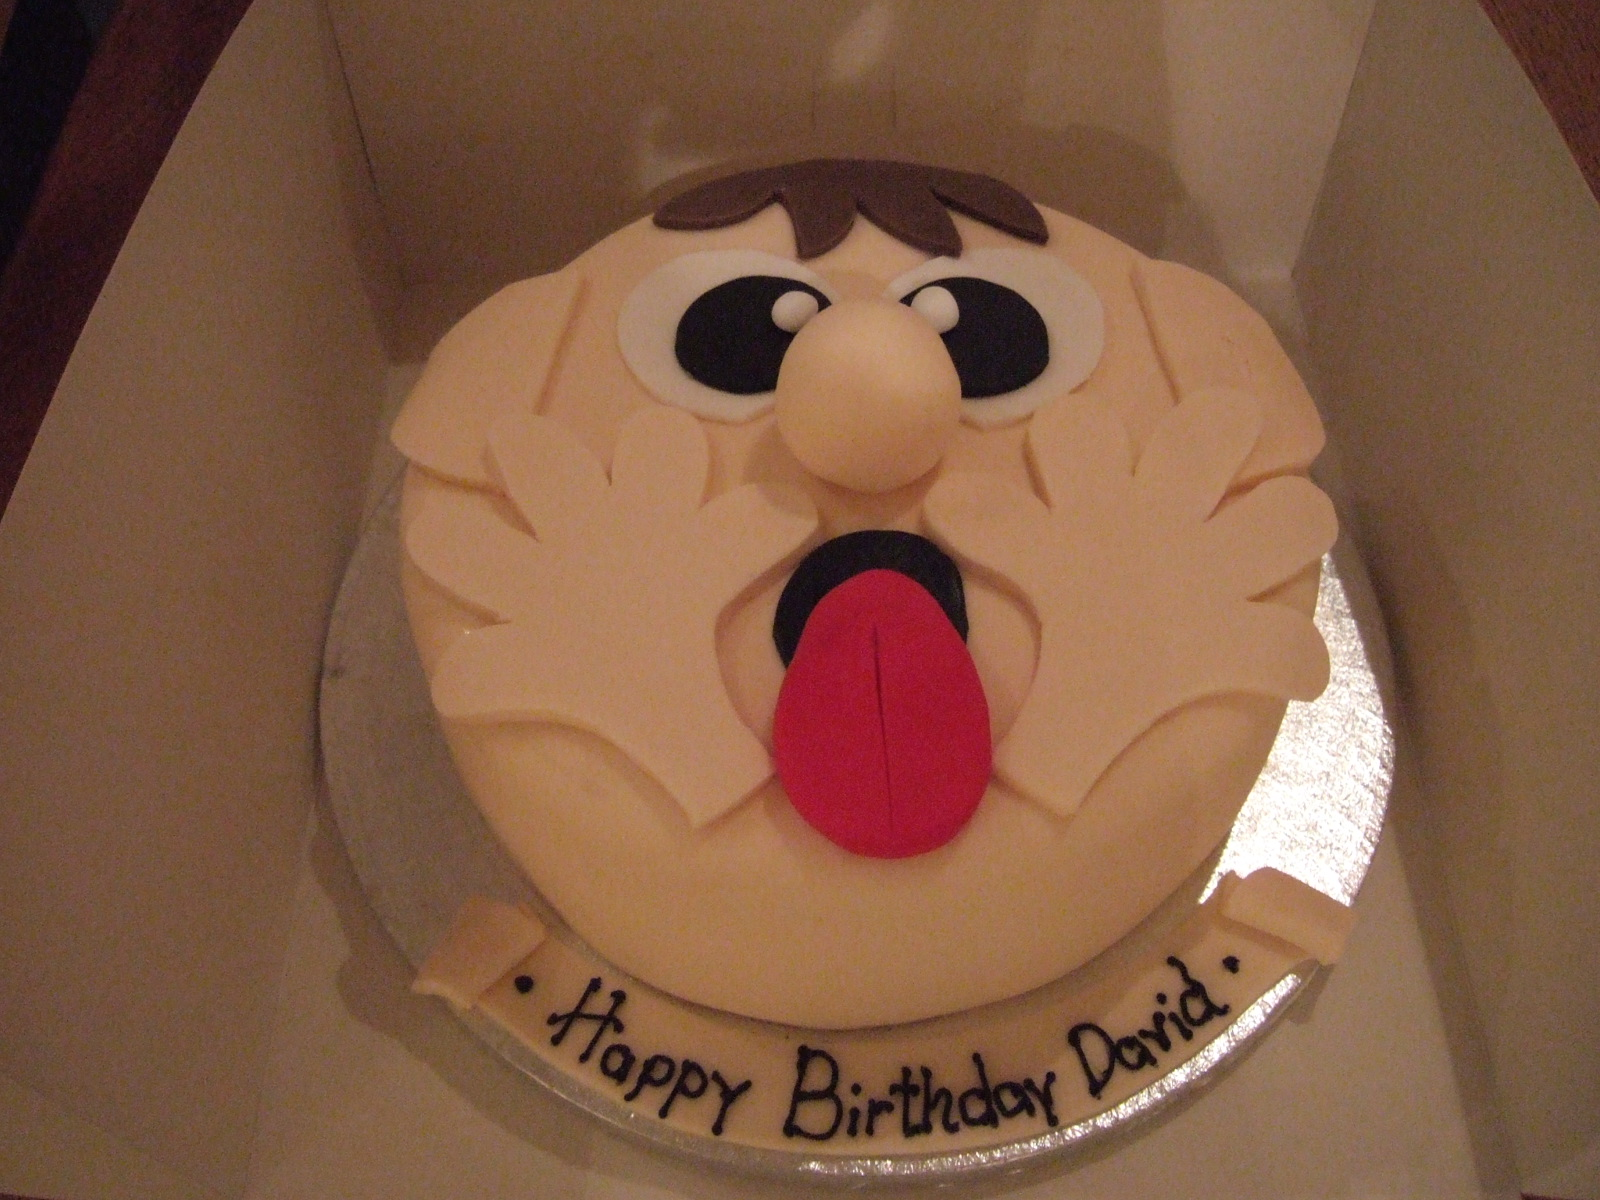 Order Your Birthday Cake From Arlo